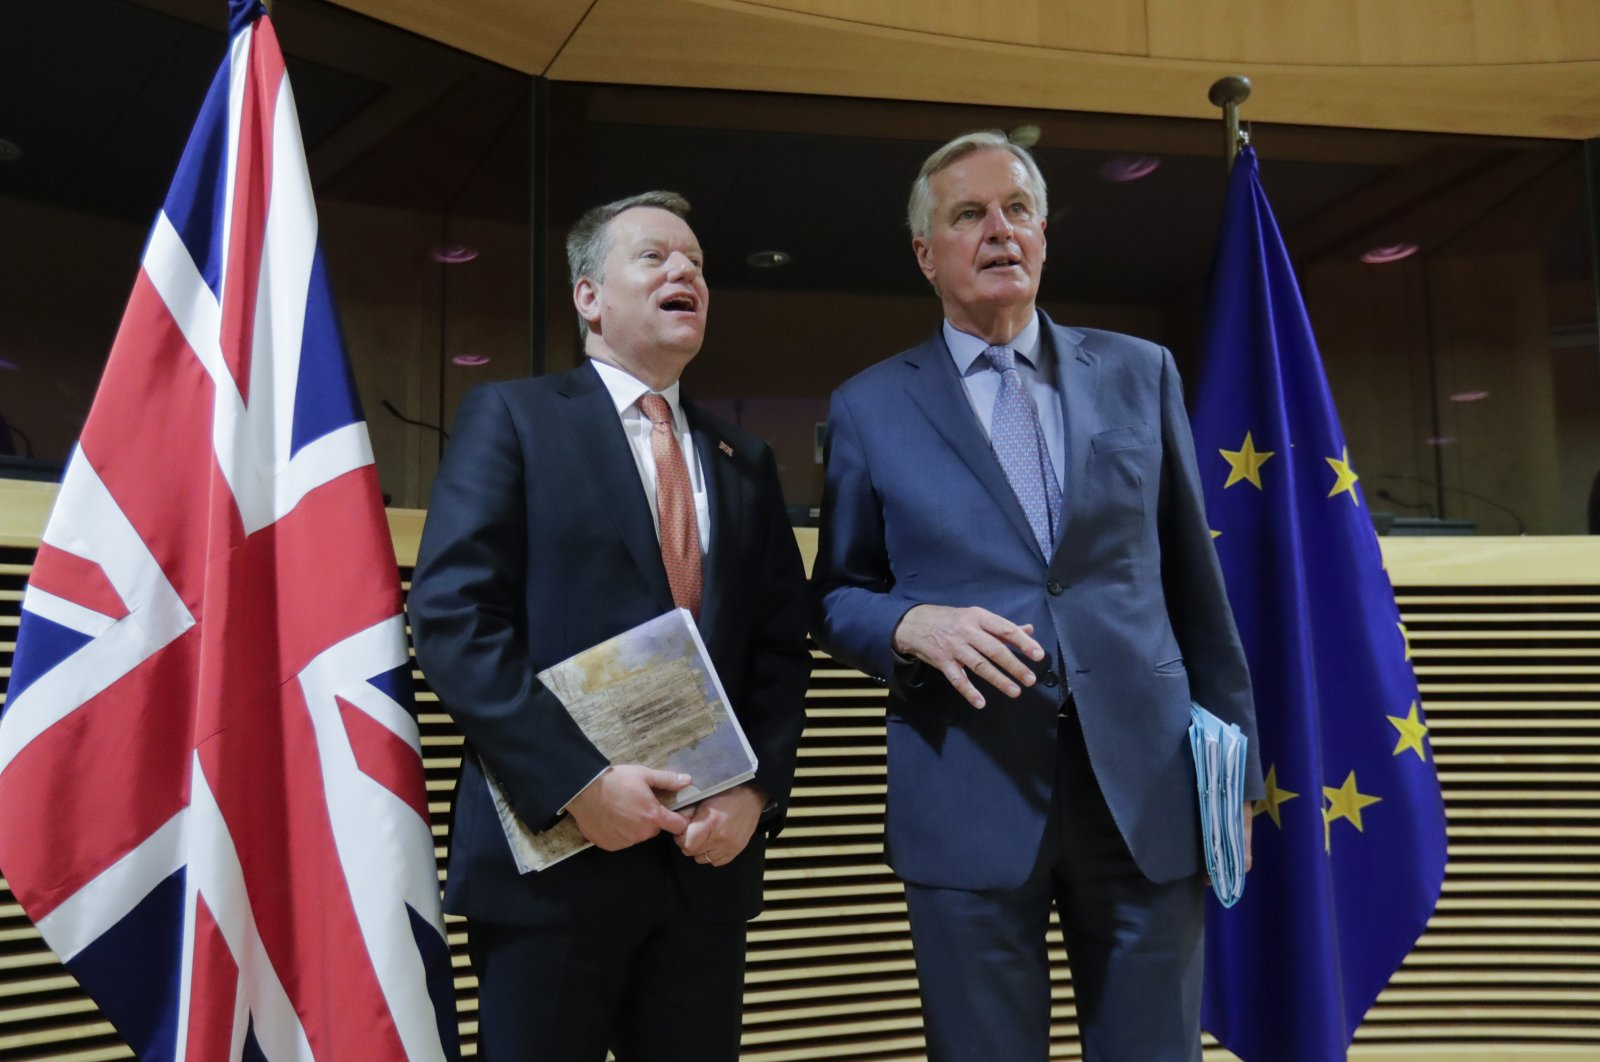 European Commission's Head of Task Force for Relations with the United Kingdom Michel Barnier, right, speaks with the British Prime Minister's Europe adviser David Frost at EU headquarters, Brussels, March 2, 2020. (AP Photo)